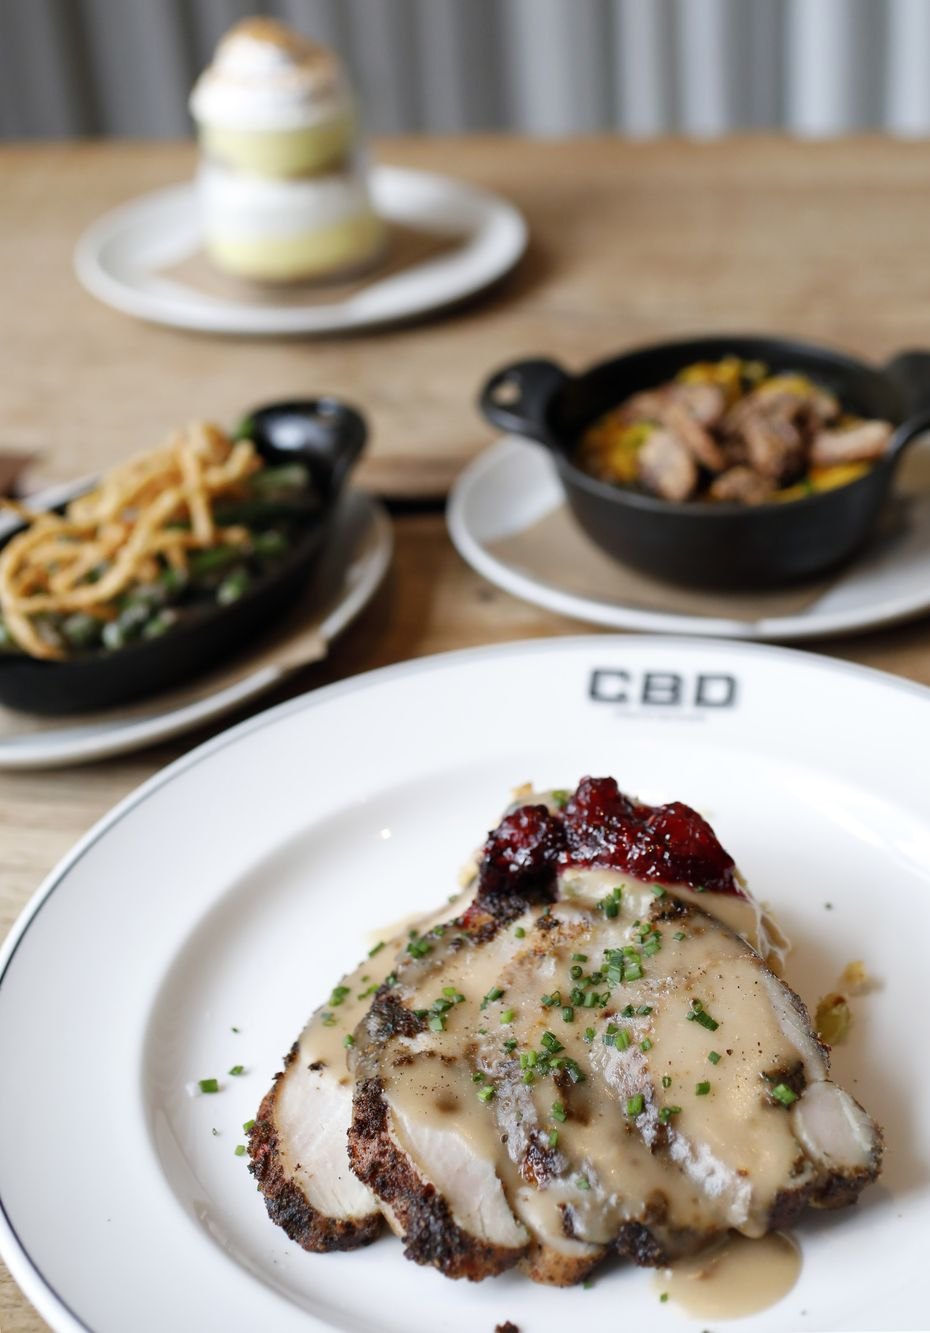 CBD Provisions is selling Thanksgiving plates. Options include fried turkey, cornbread dressing, blackberry and cranberry compote, green bean casserole, brown butter sweet potato puree, and banana trifle.